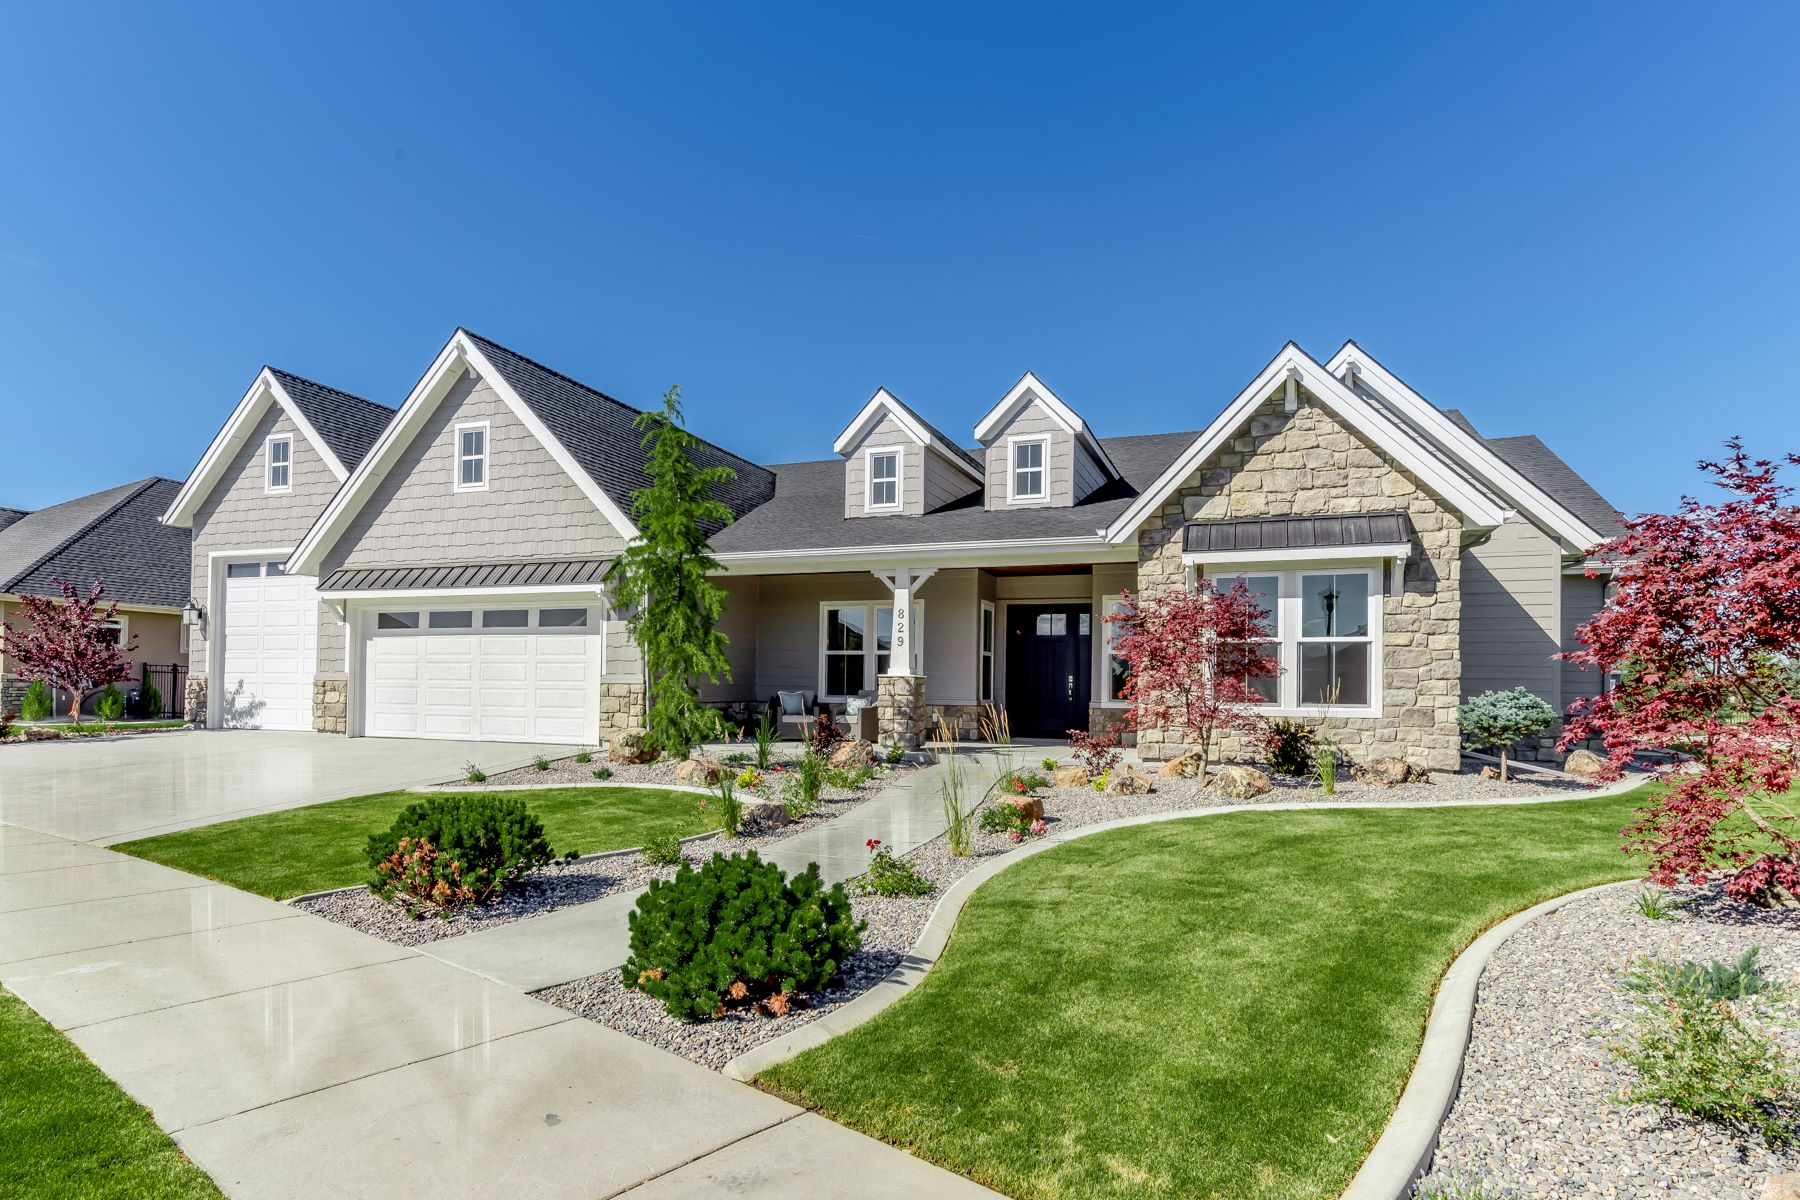 Single Family Homes for Sale at 4717 Salix Court, Meridian 4717 W Salix Ct Meridian, Idaho 83646 United States